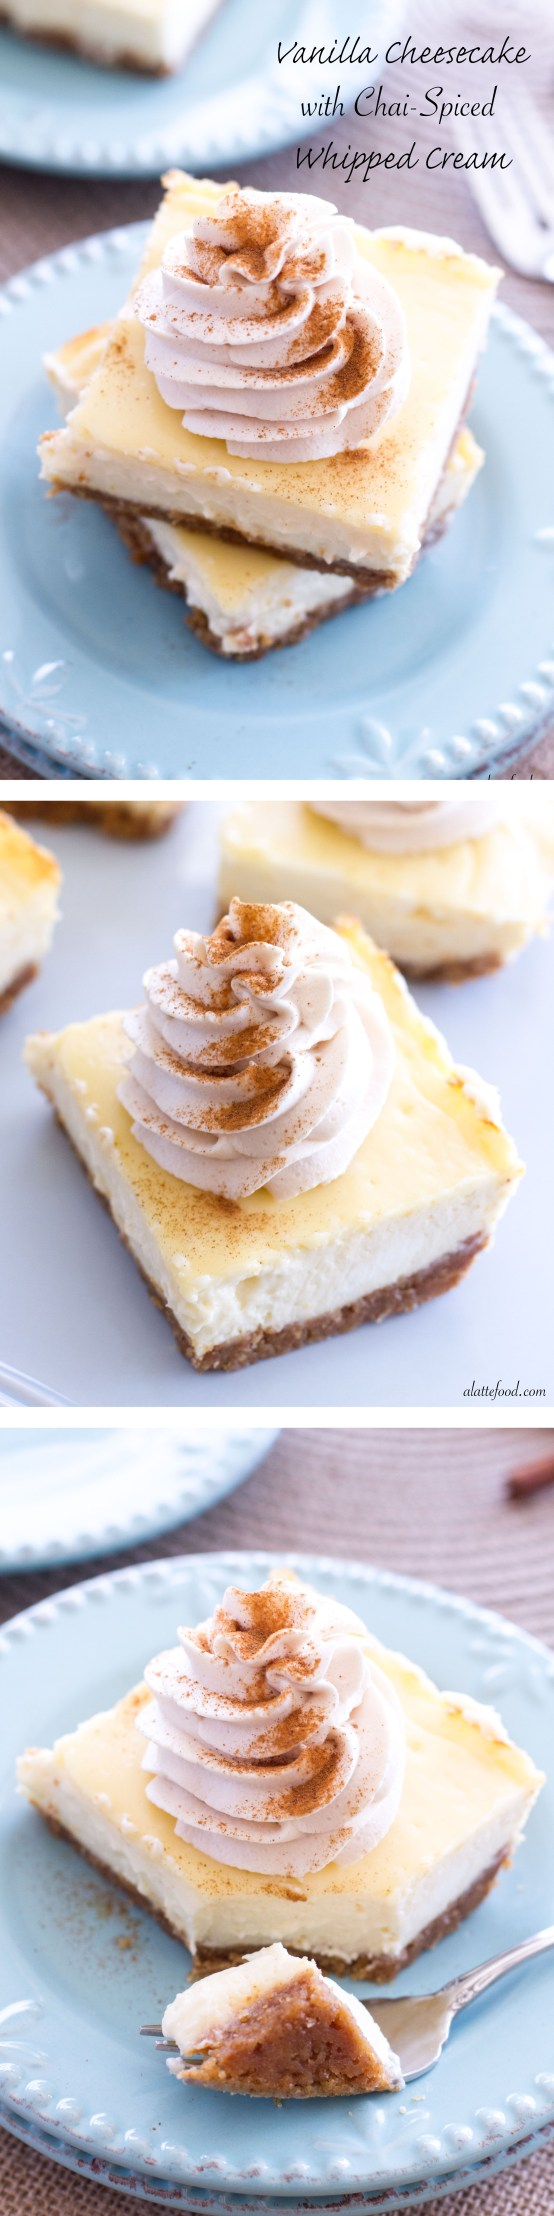 Vanilla Cheesecake Bars with Chai Whipped Cream   These creamy vanilla cheesecake bars are rich, delicious, and topped with a homemade chai whipped cream!   www.alattefood.com